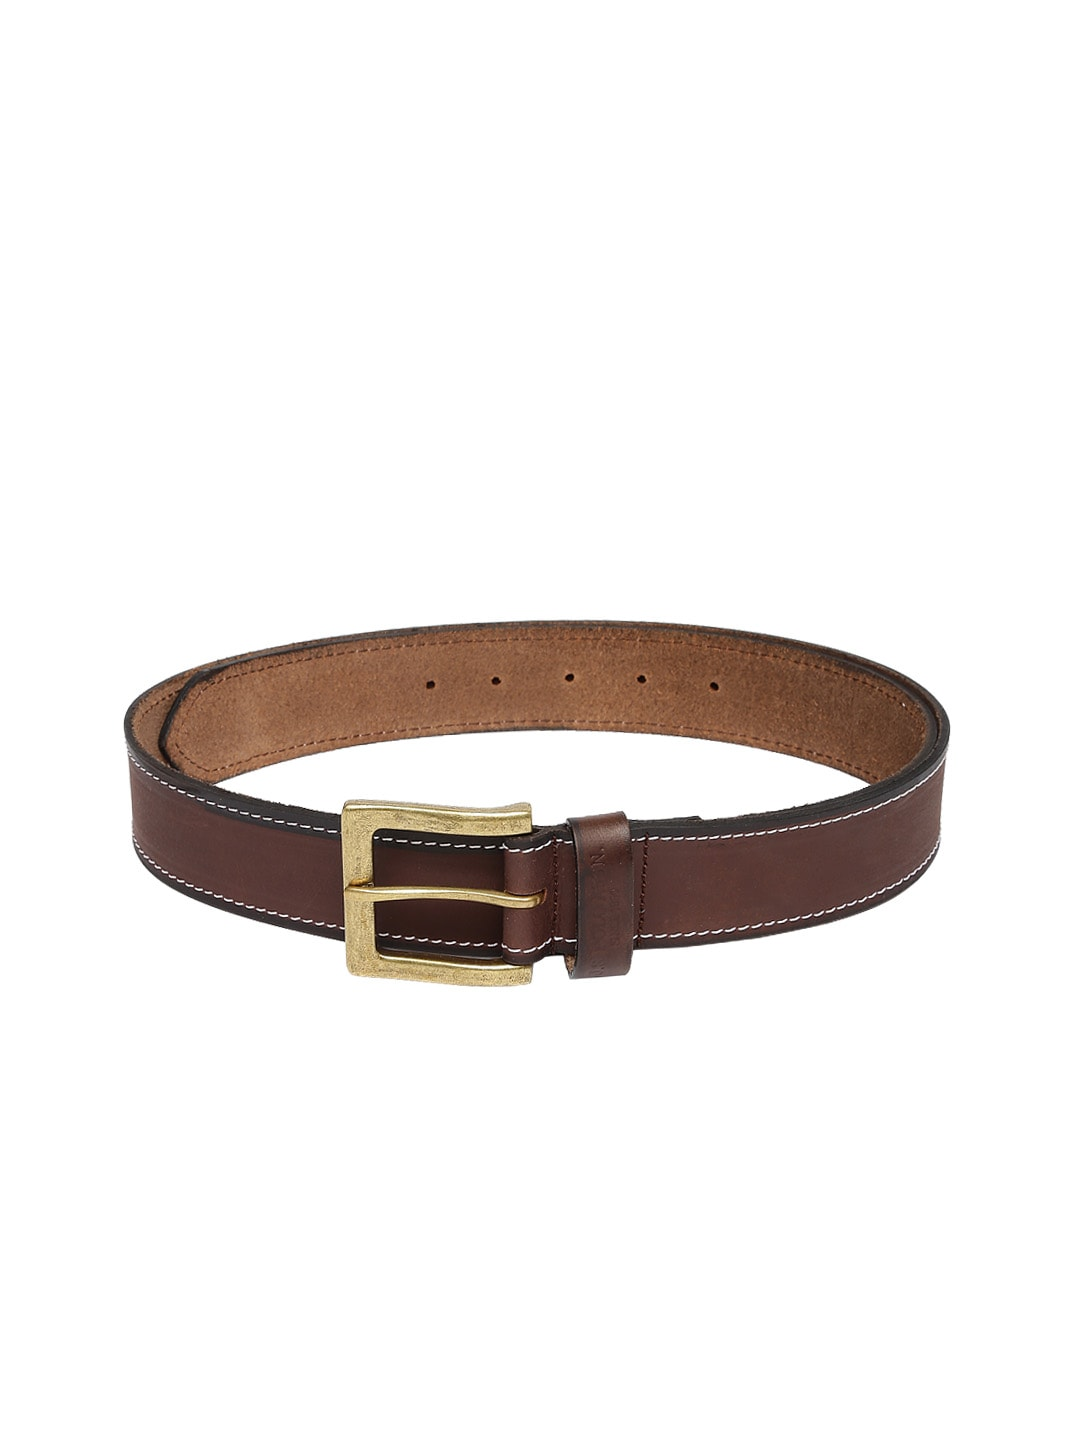 U.S. Polo Assn. Men Brown Leather Belt